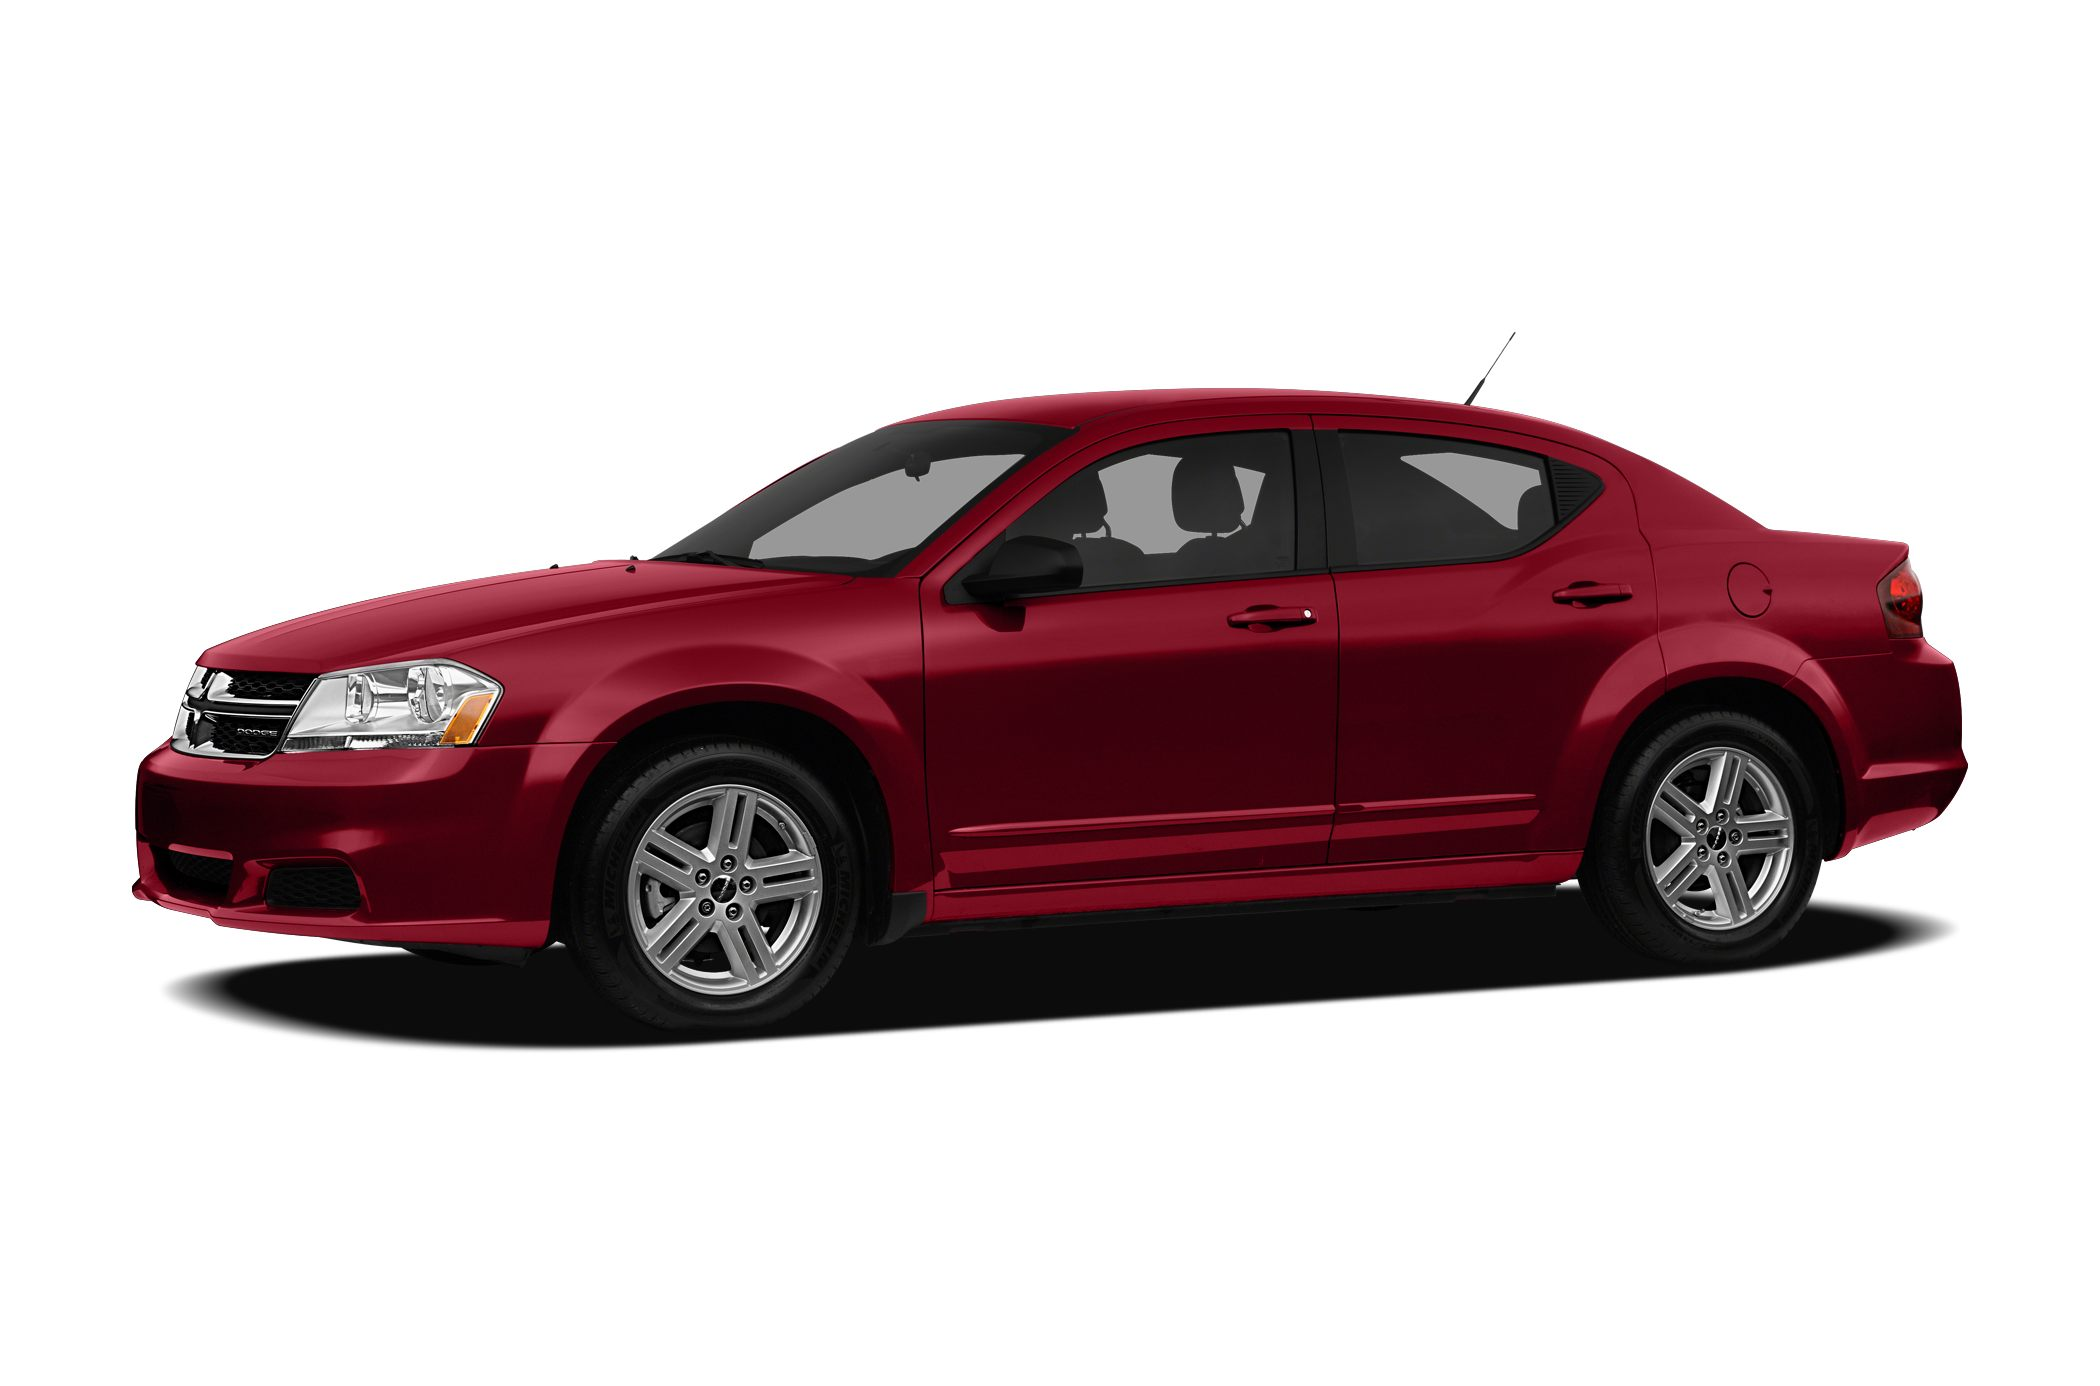 2012 Dodge Avenger SE Sedan for sale in Morrow for $9,995 with 61,908 miles.